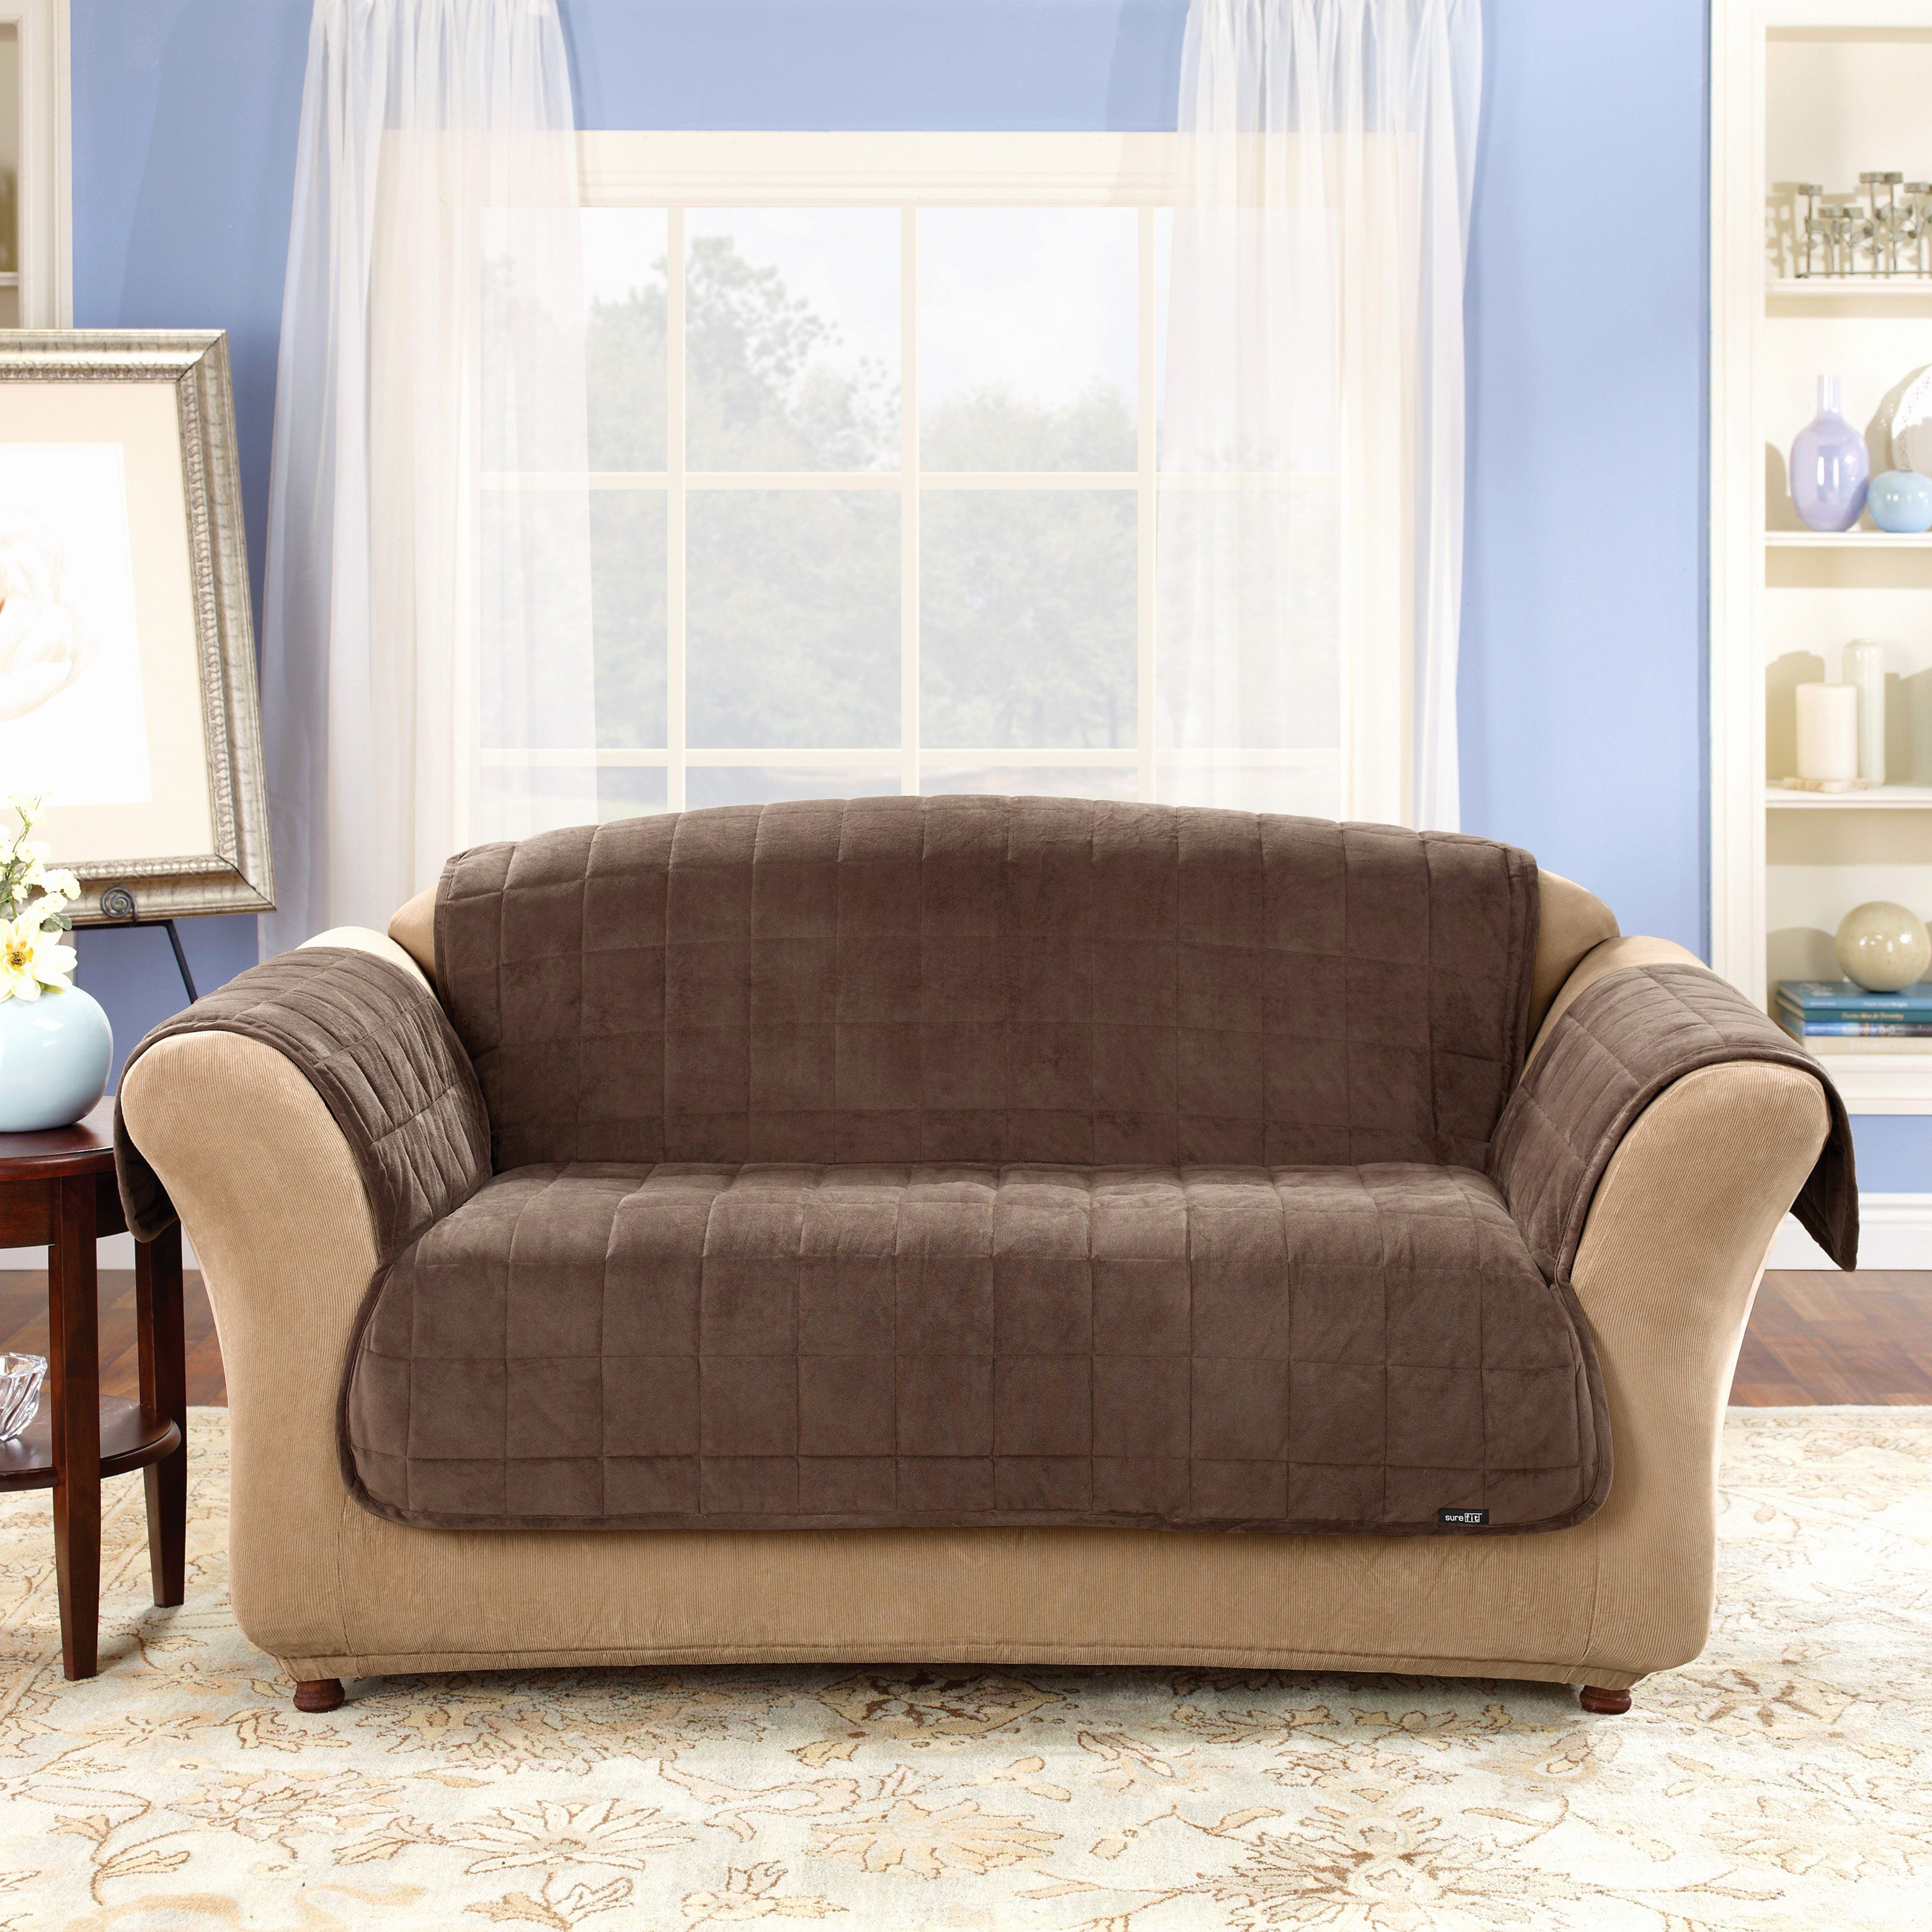 Ideas Sofa Covers For Leather Sofas Images Rh Pinterest Com